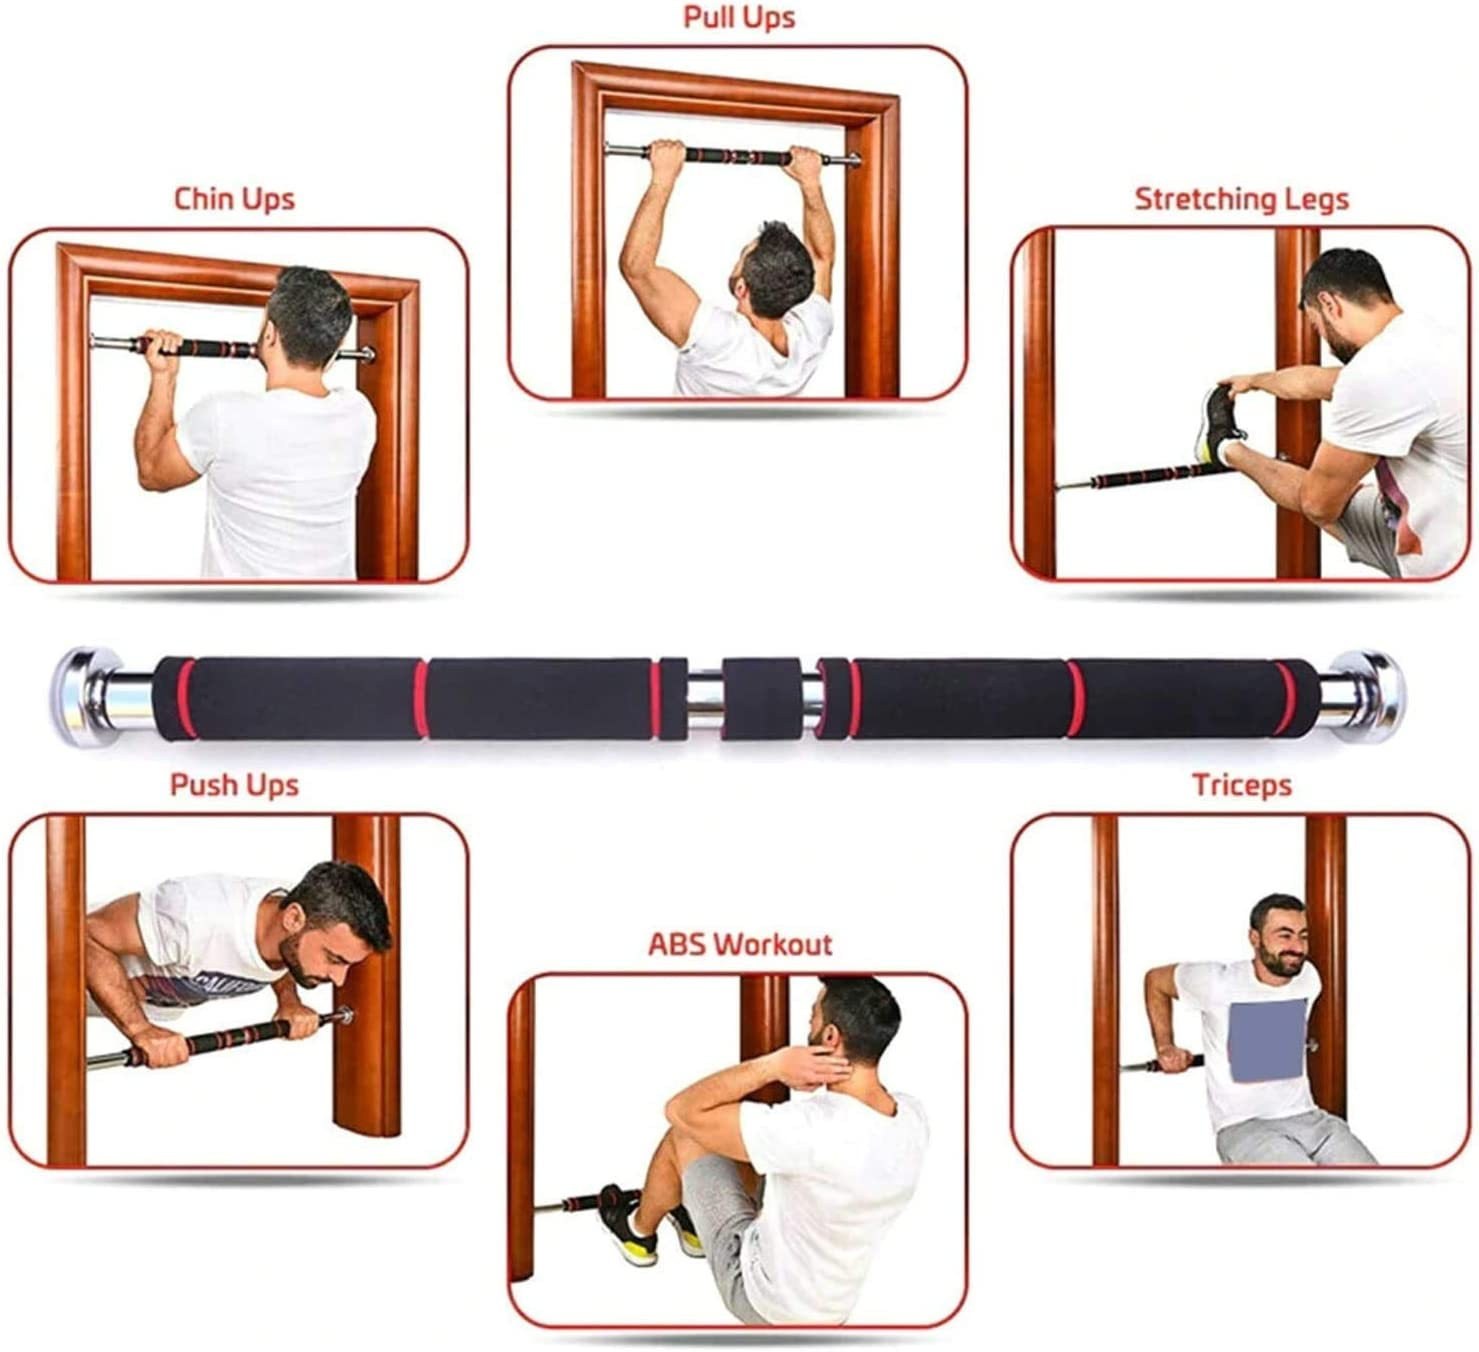 23.62-39.37 Retractable Arm Strength Training Exercise Bar Stainless Steel Chin Up Bar Household Horizontal Bar Doorway Pull Up Bar